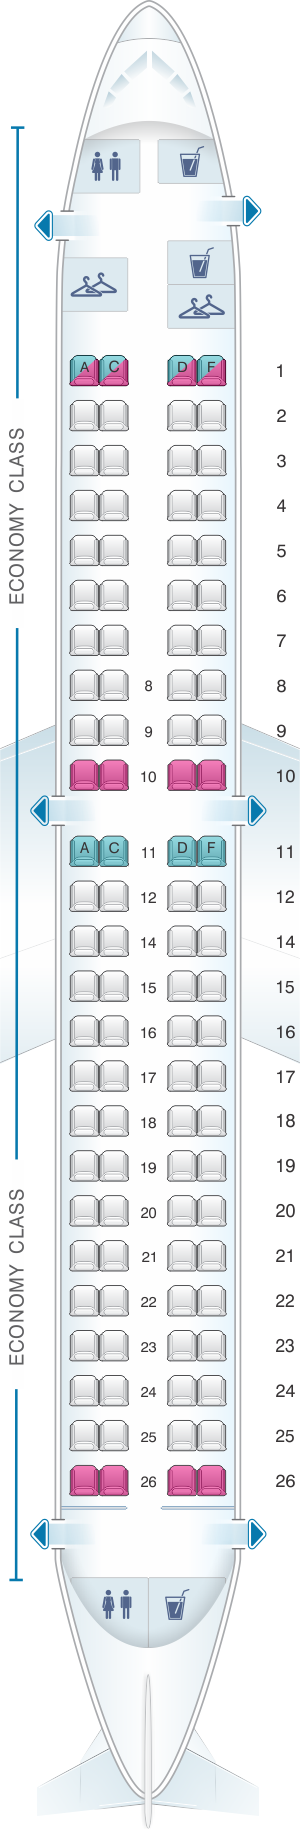 Seat map for Air France Embraer 190